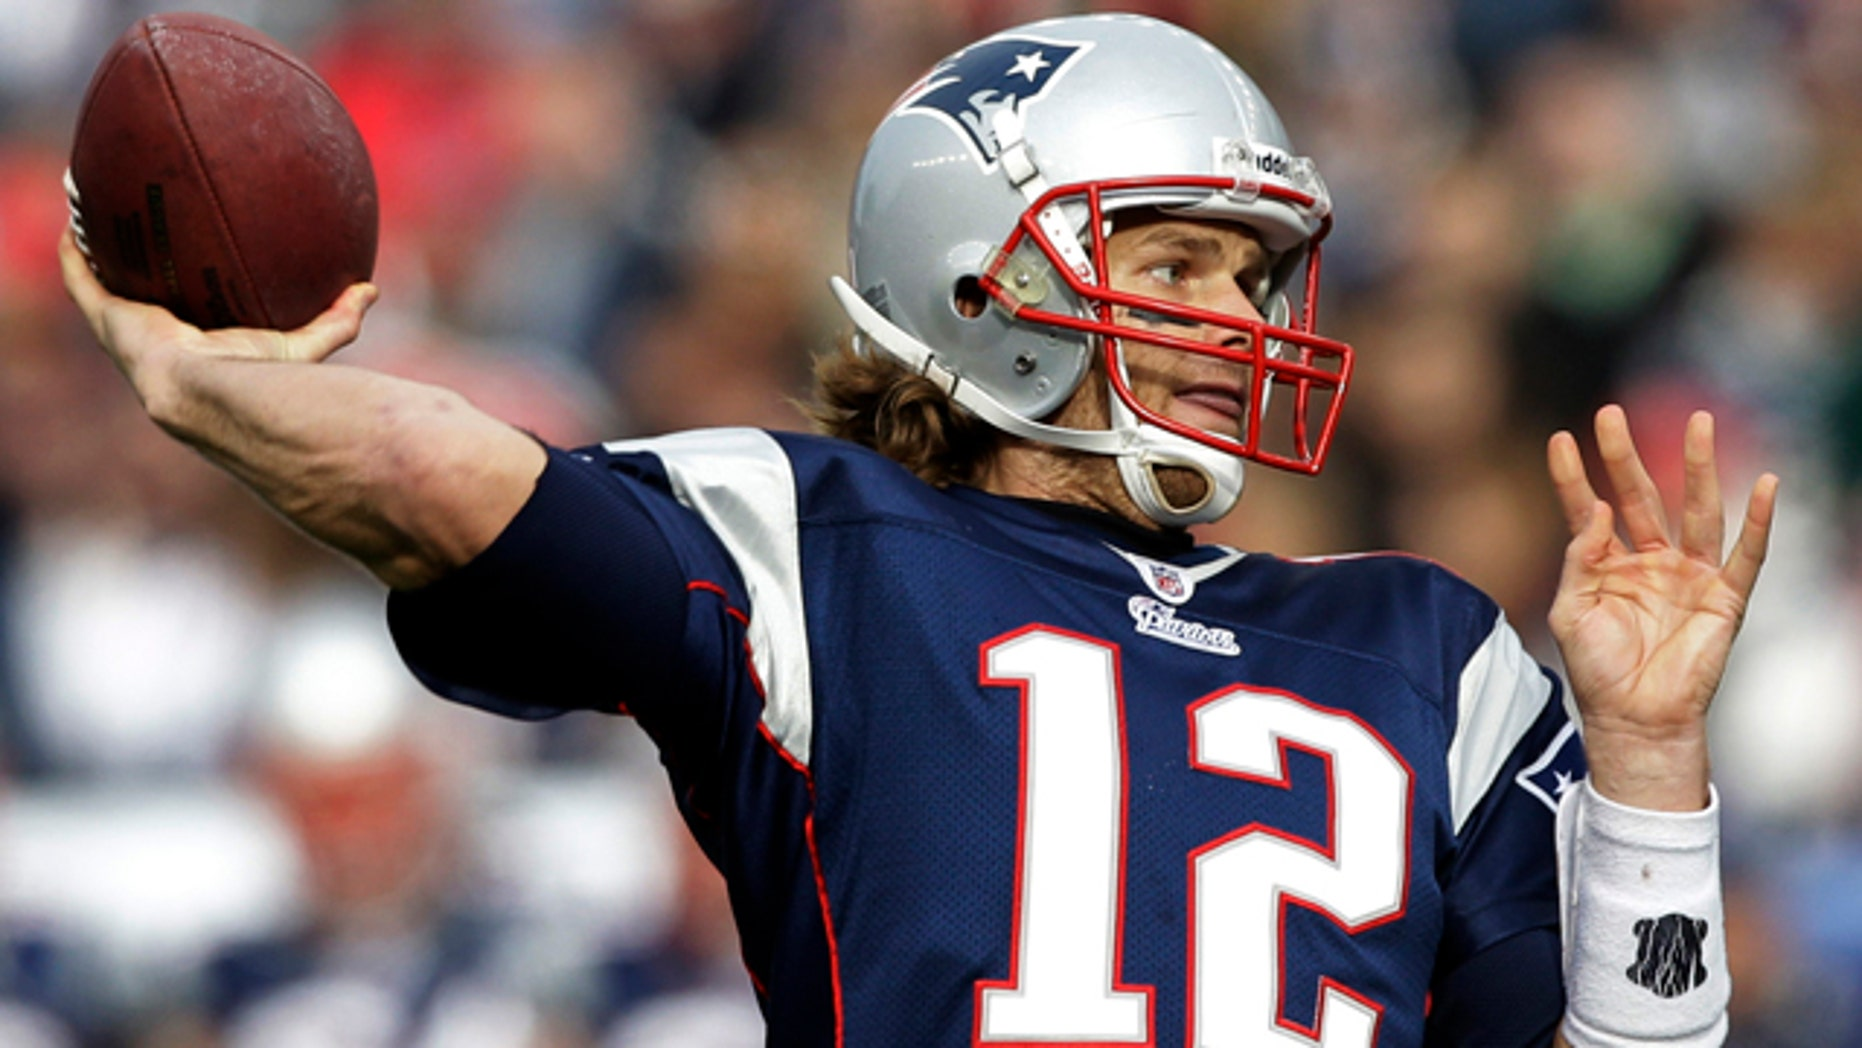 Jan. 2: New England Patriots quarterback Tom Brady passes during the first quarter of an NFL football game against the Miami Dolphins in Foxborough, Mass.